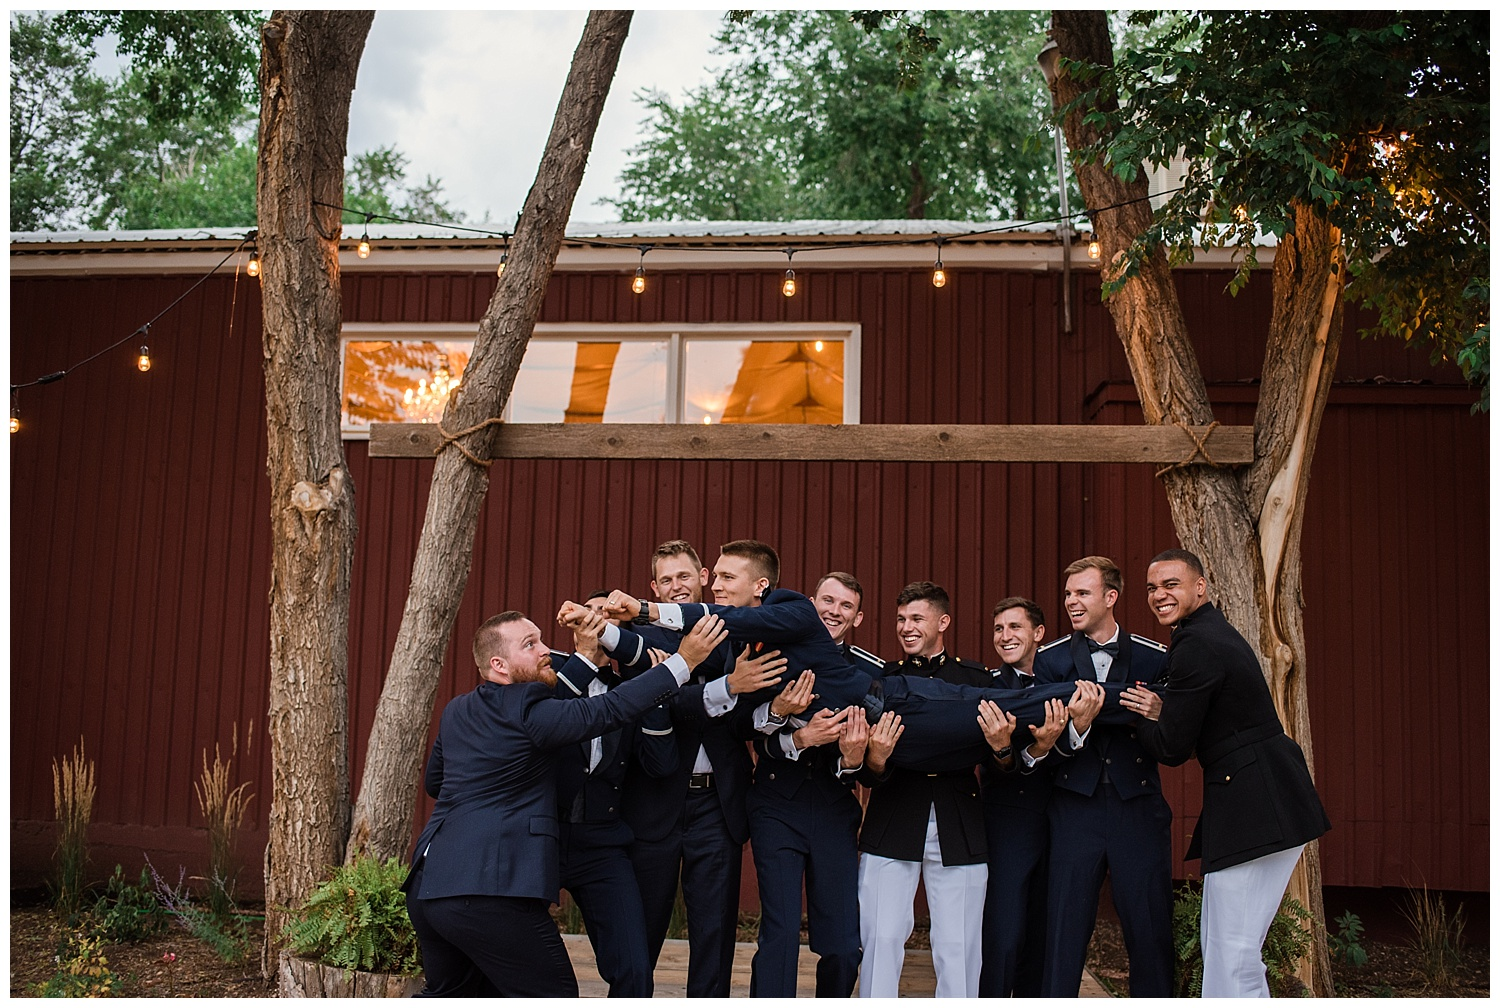 Military Wedding, bridal party, dress blues, groomsmen, bridesmaids, dress blues, groomsmen holding up groom, Colorado Wedding Photographer, Denver Wedding Photographer, Denver Elopement Photographer, Colorado Elopement Photographer, Rocky Mountain Wedding Photographer, Downtown Denver Photographer, colorado springs wedding photographer